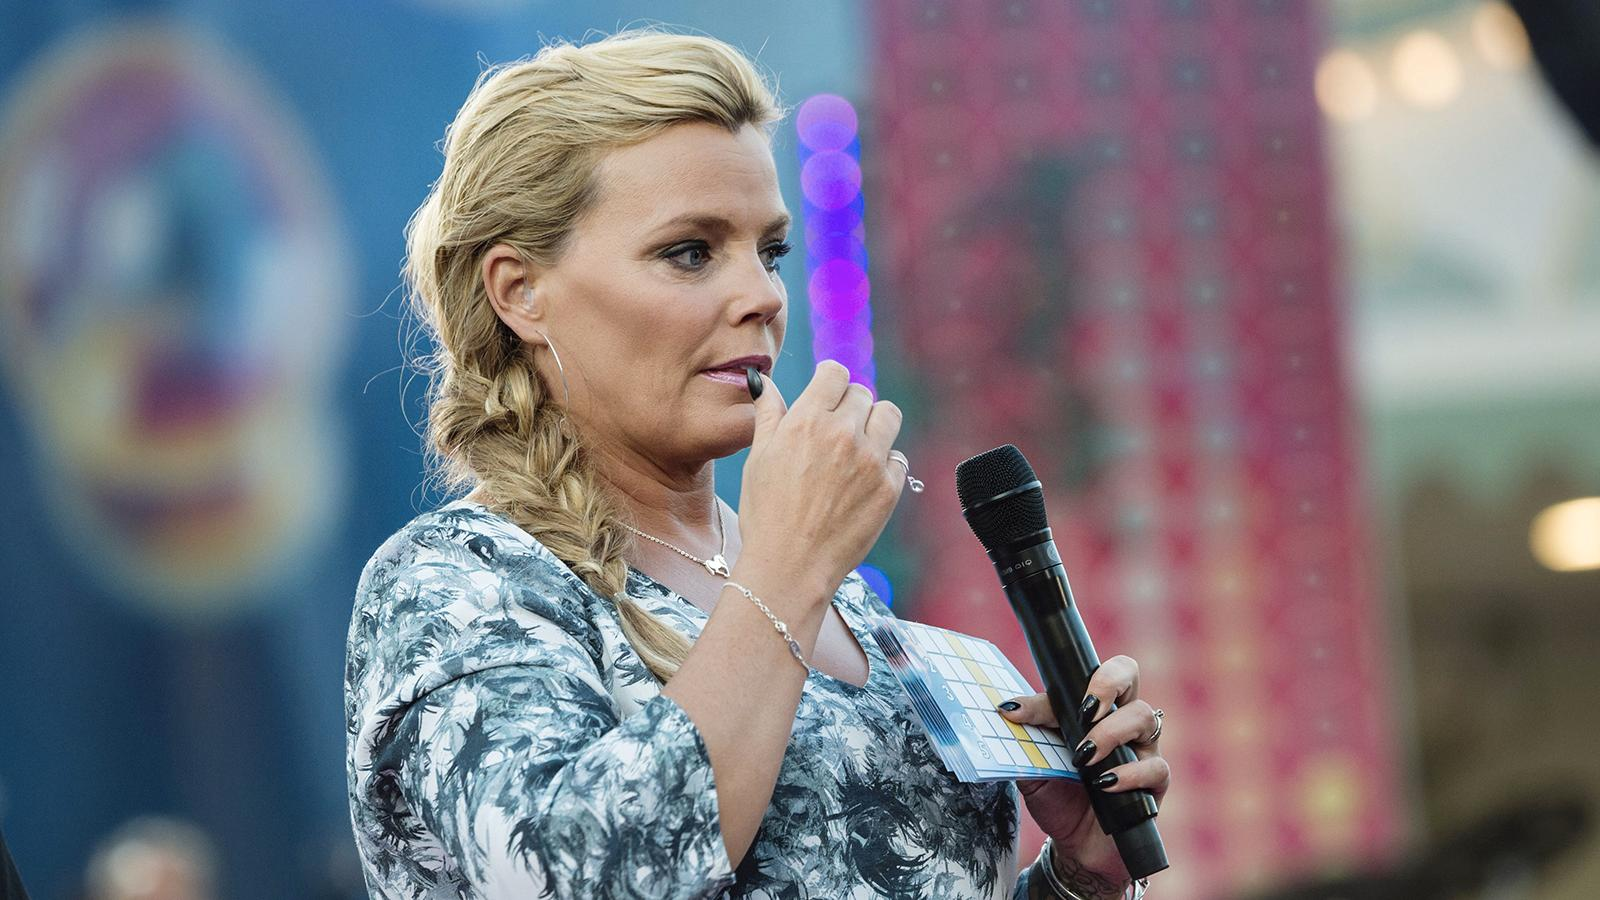 Gry Forssell.